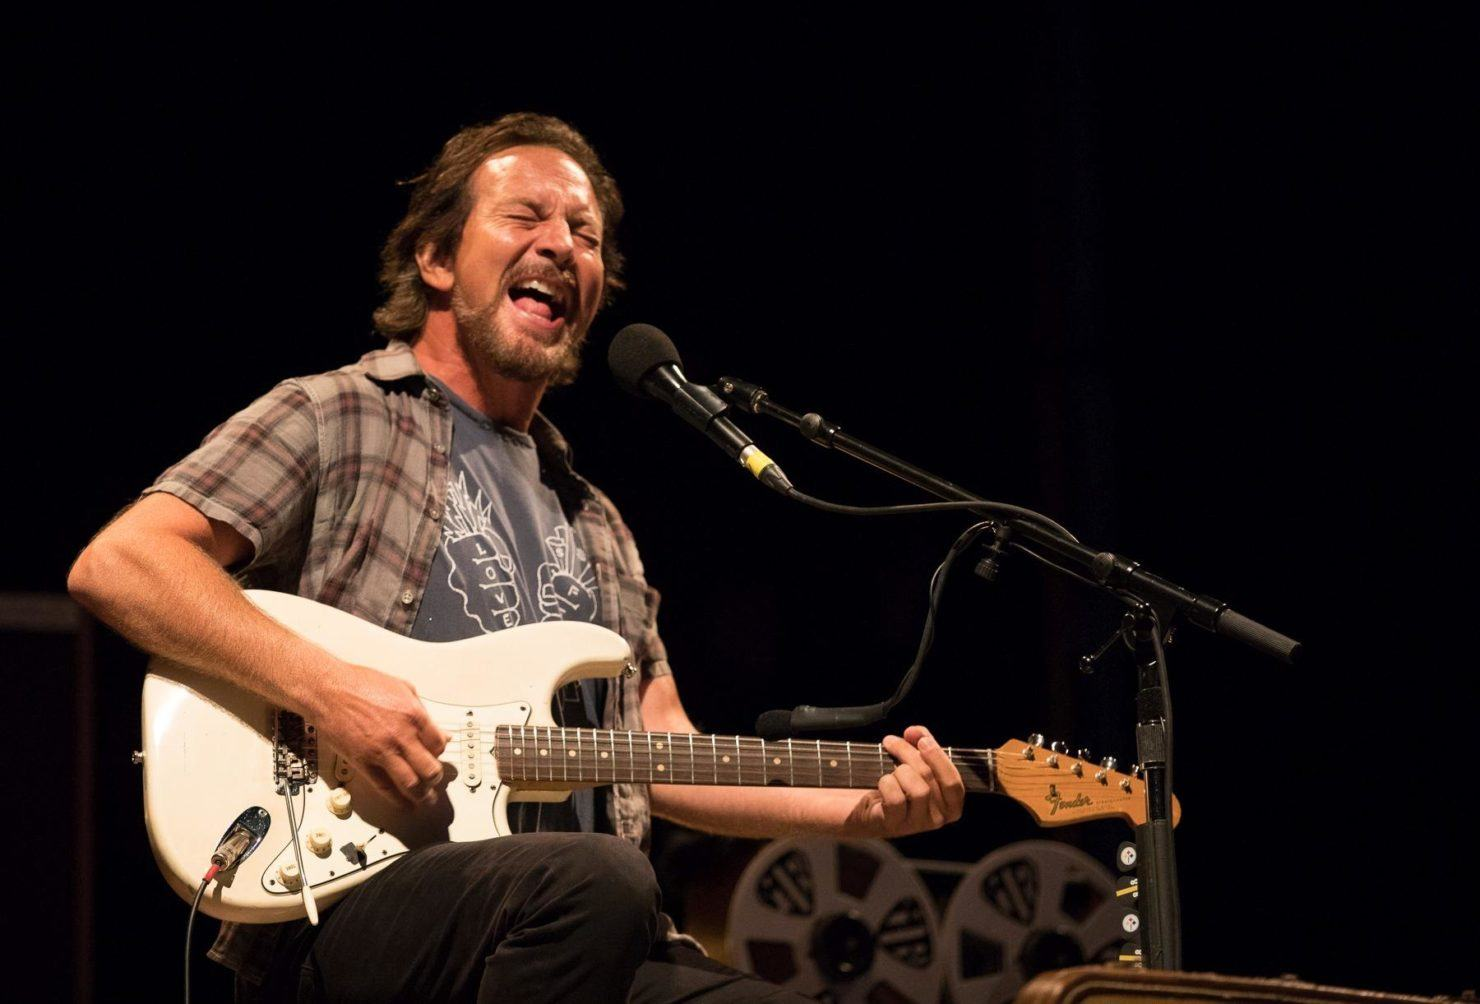 Eddie Vedder Tour Dates 2020 Eddie Vedder Announces 2019 European Tour